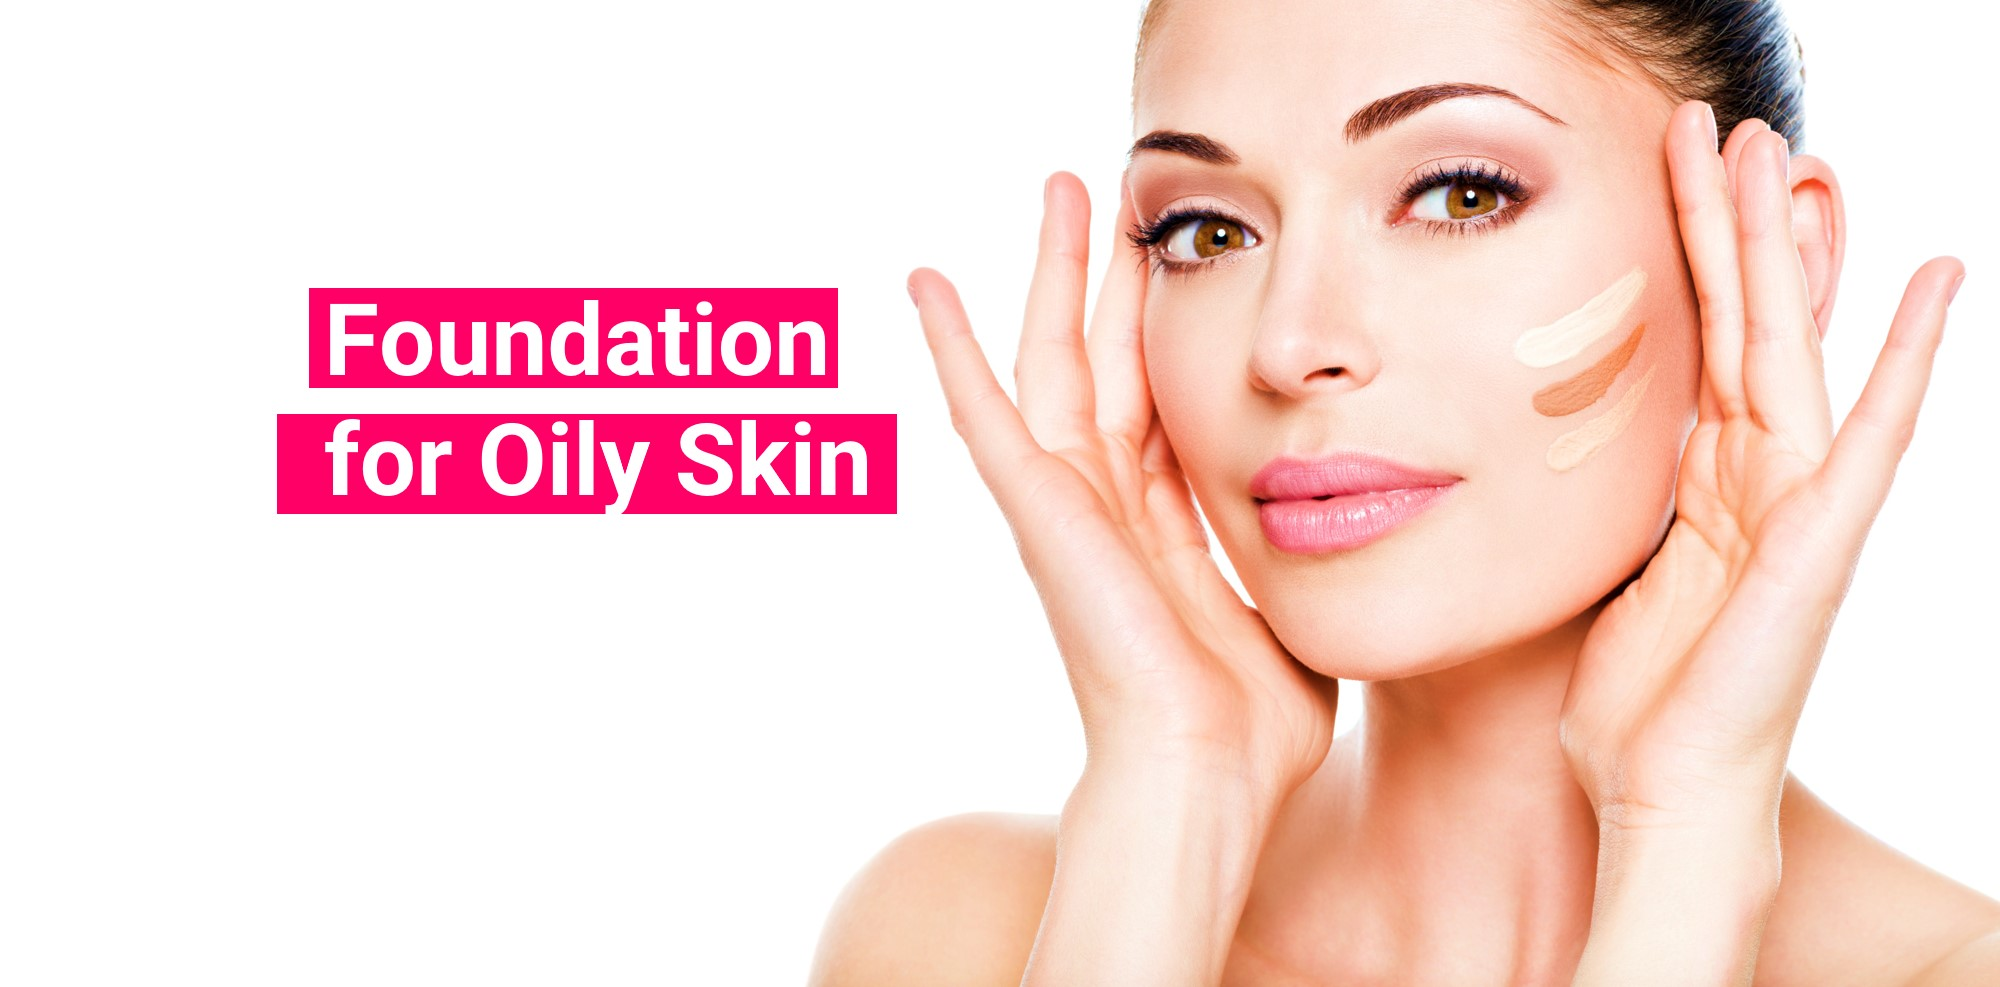 Top 5 Best Selling Foundation for Oily Skin in 2021